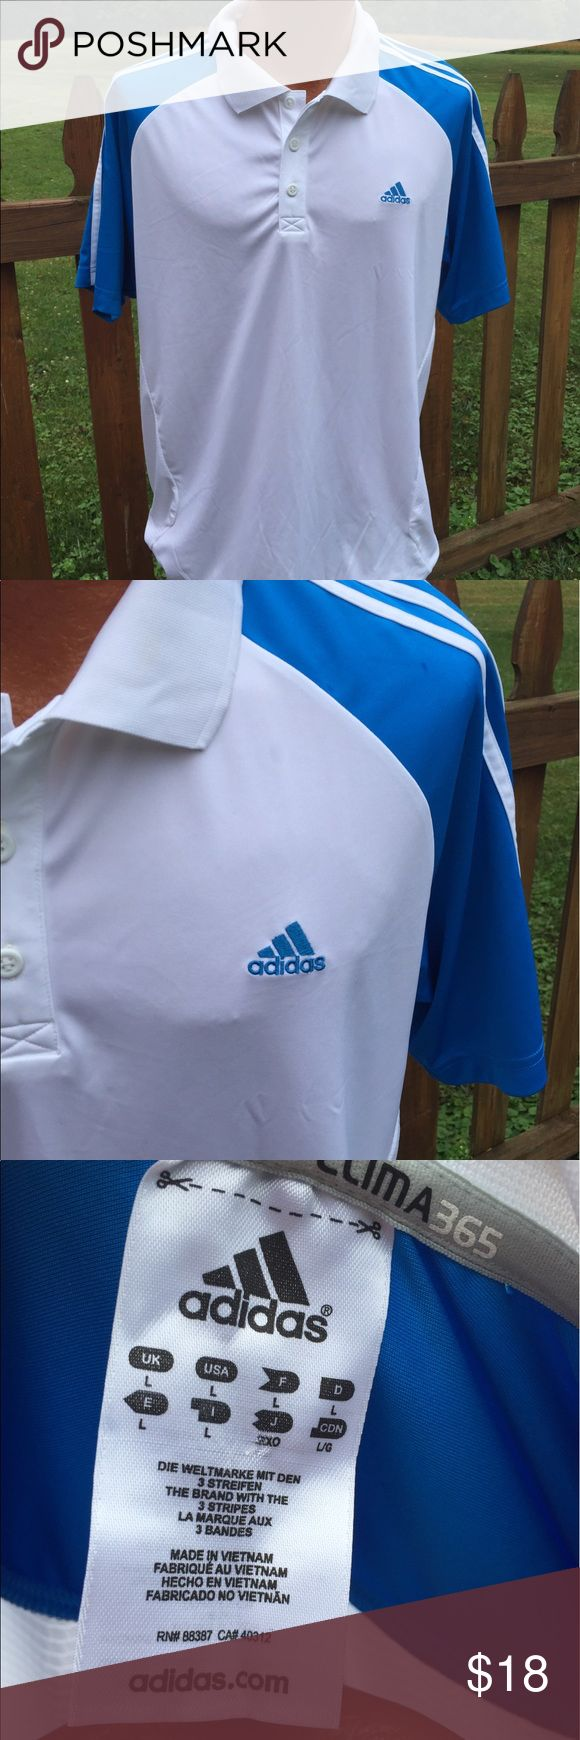 Adidas Mens Clima Lite Golf Polo Shirt Size Large Size large. Super gently preowned. Be sure to view the other items in our closet. We offer  women's, Mens and kids items in a variety of sizes. Bundle and save!! We love reasonable offers!! Thank you for viewing our item!! adidas Shirts Polos